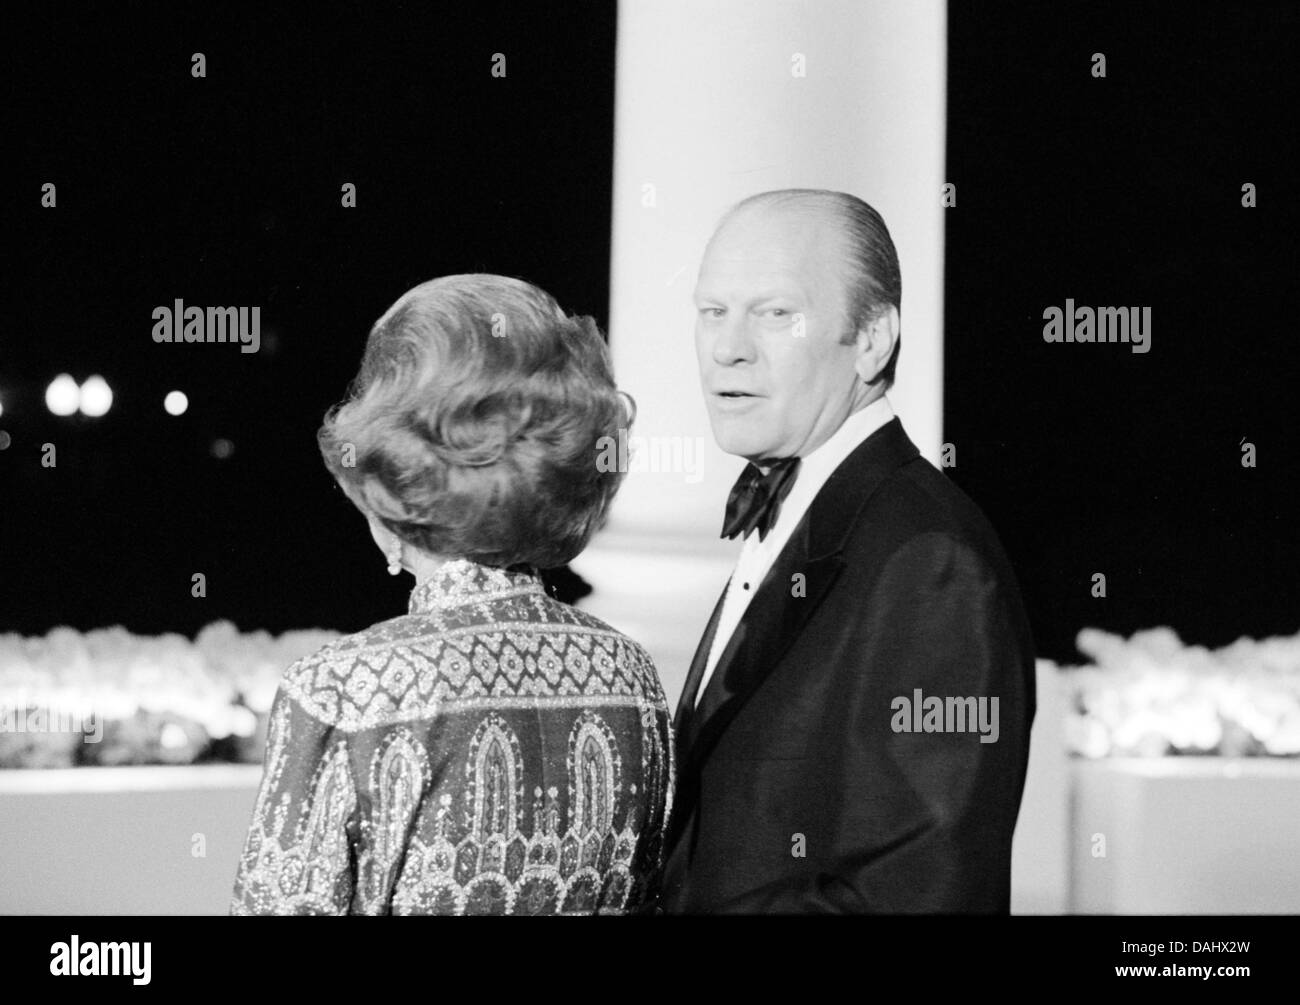 President Gerald Ford and First Lady Betty Ford - Stock Image